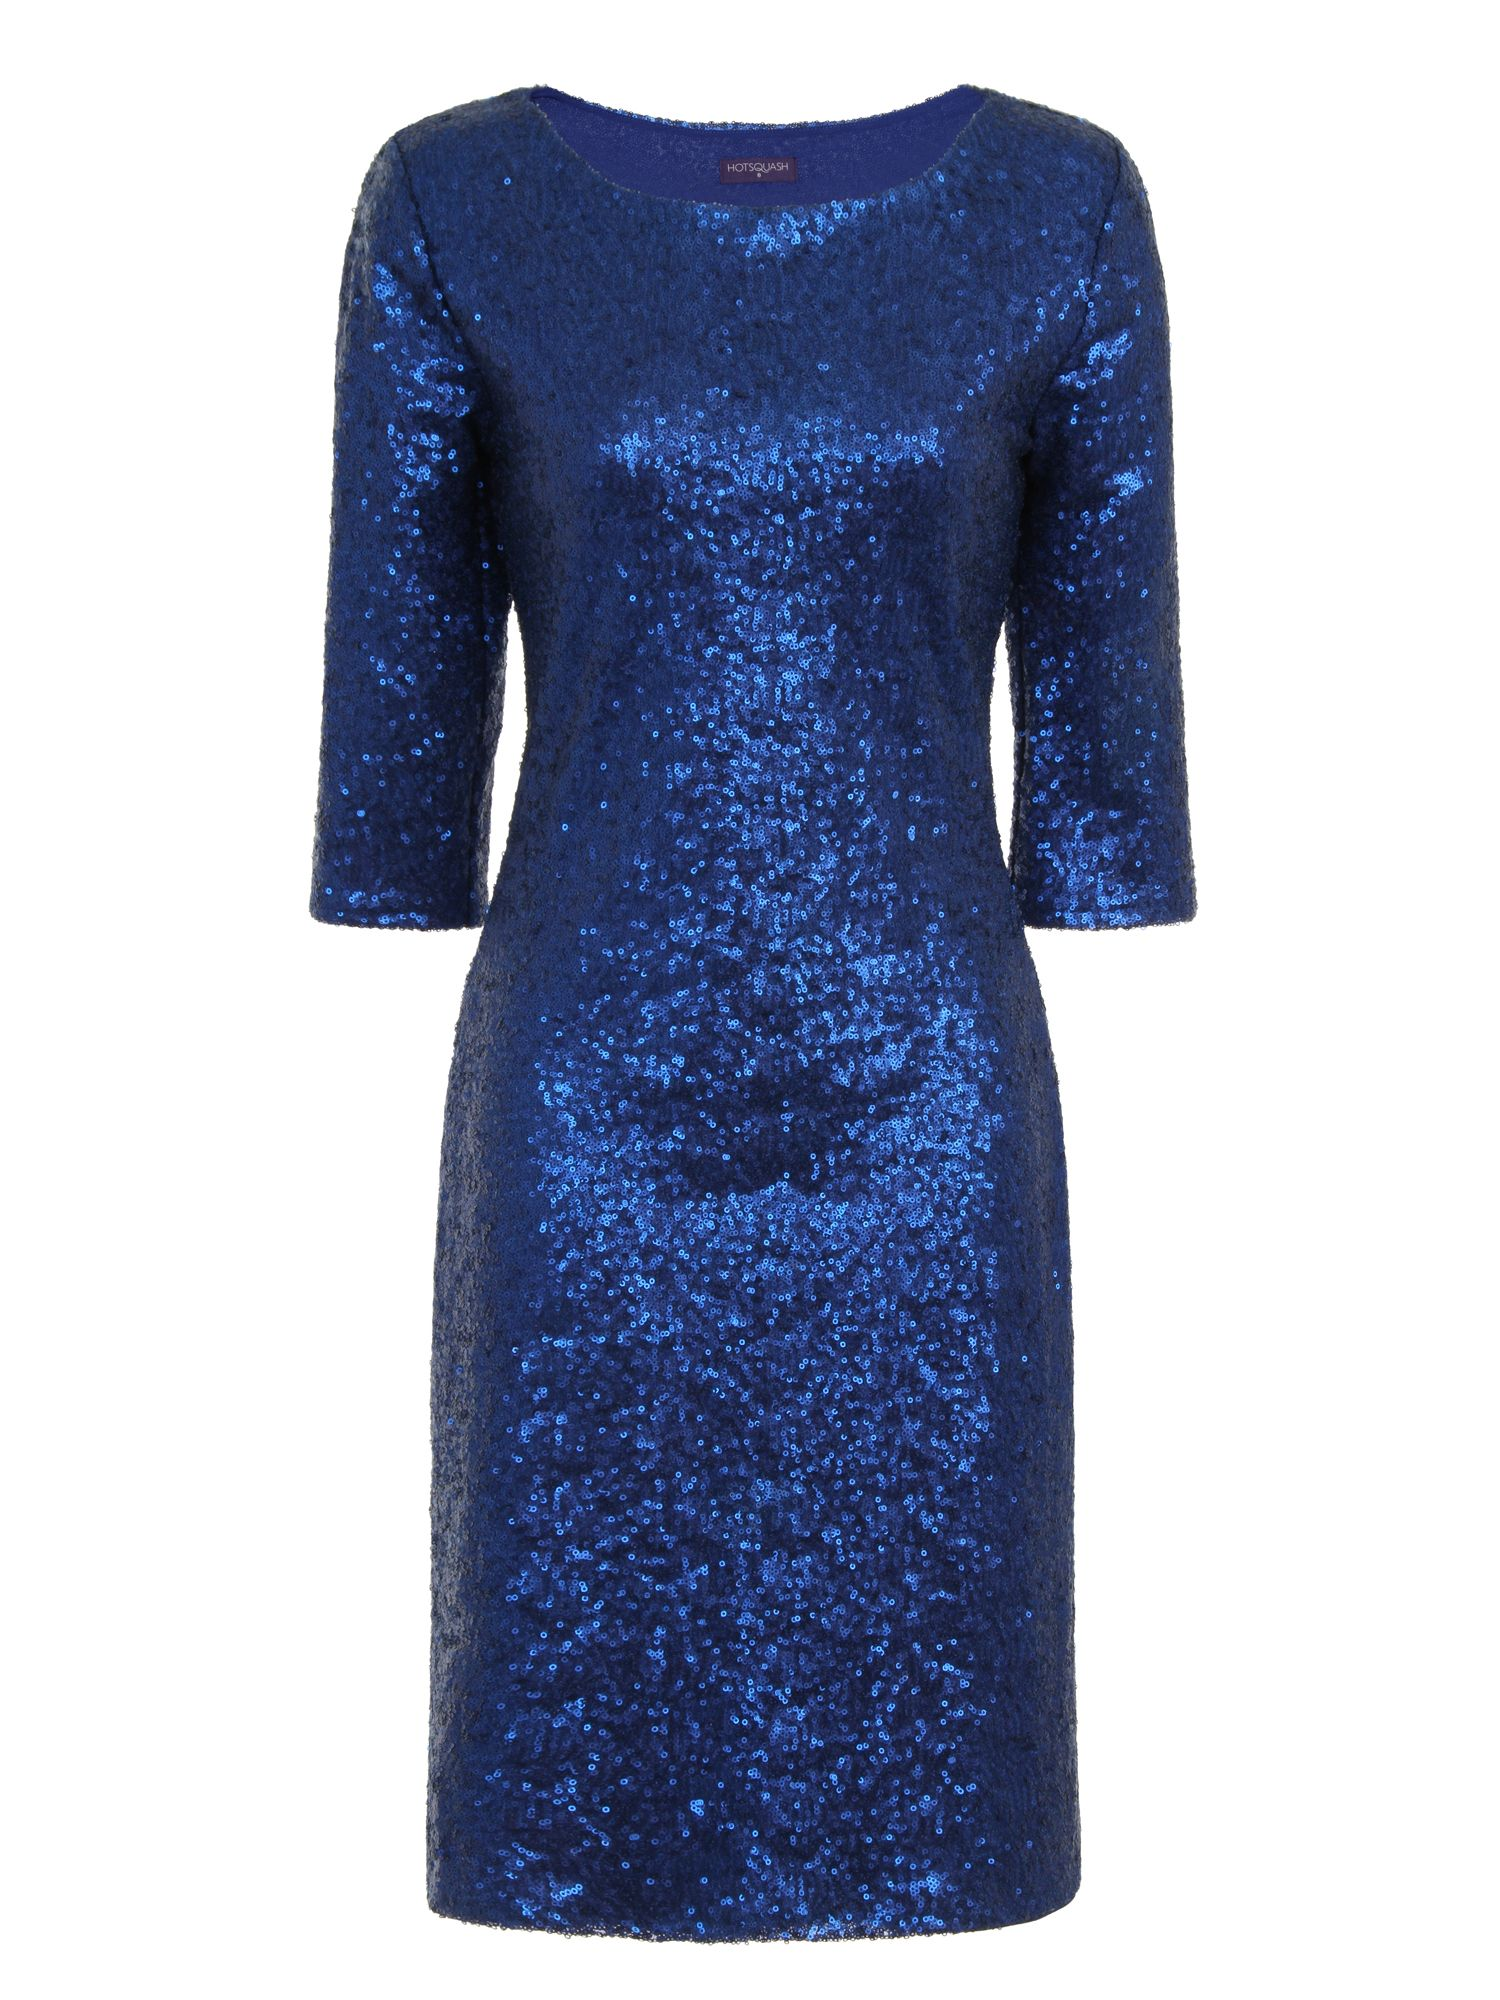 HotSquash Long Sleeved Dress With Sequin Trim, Bright Blue